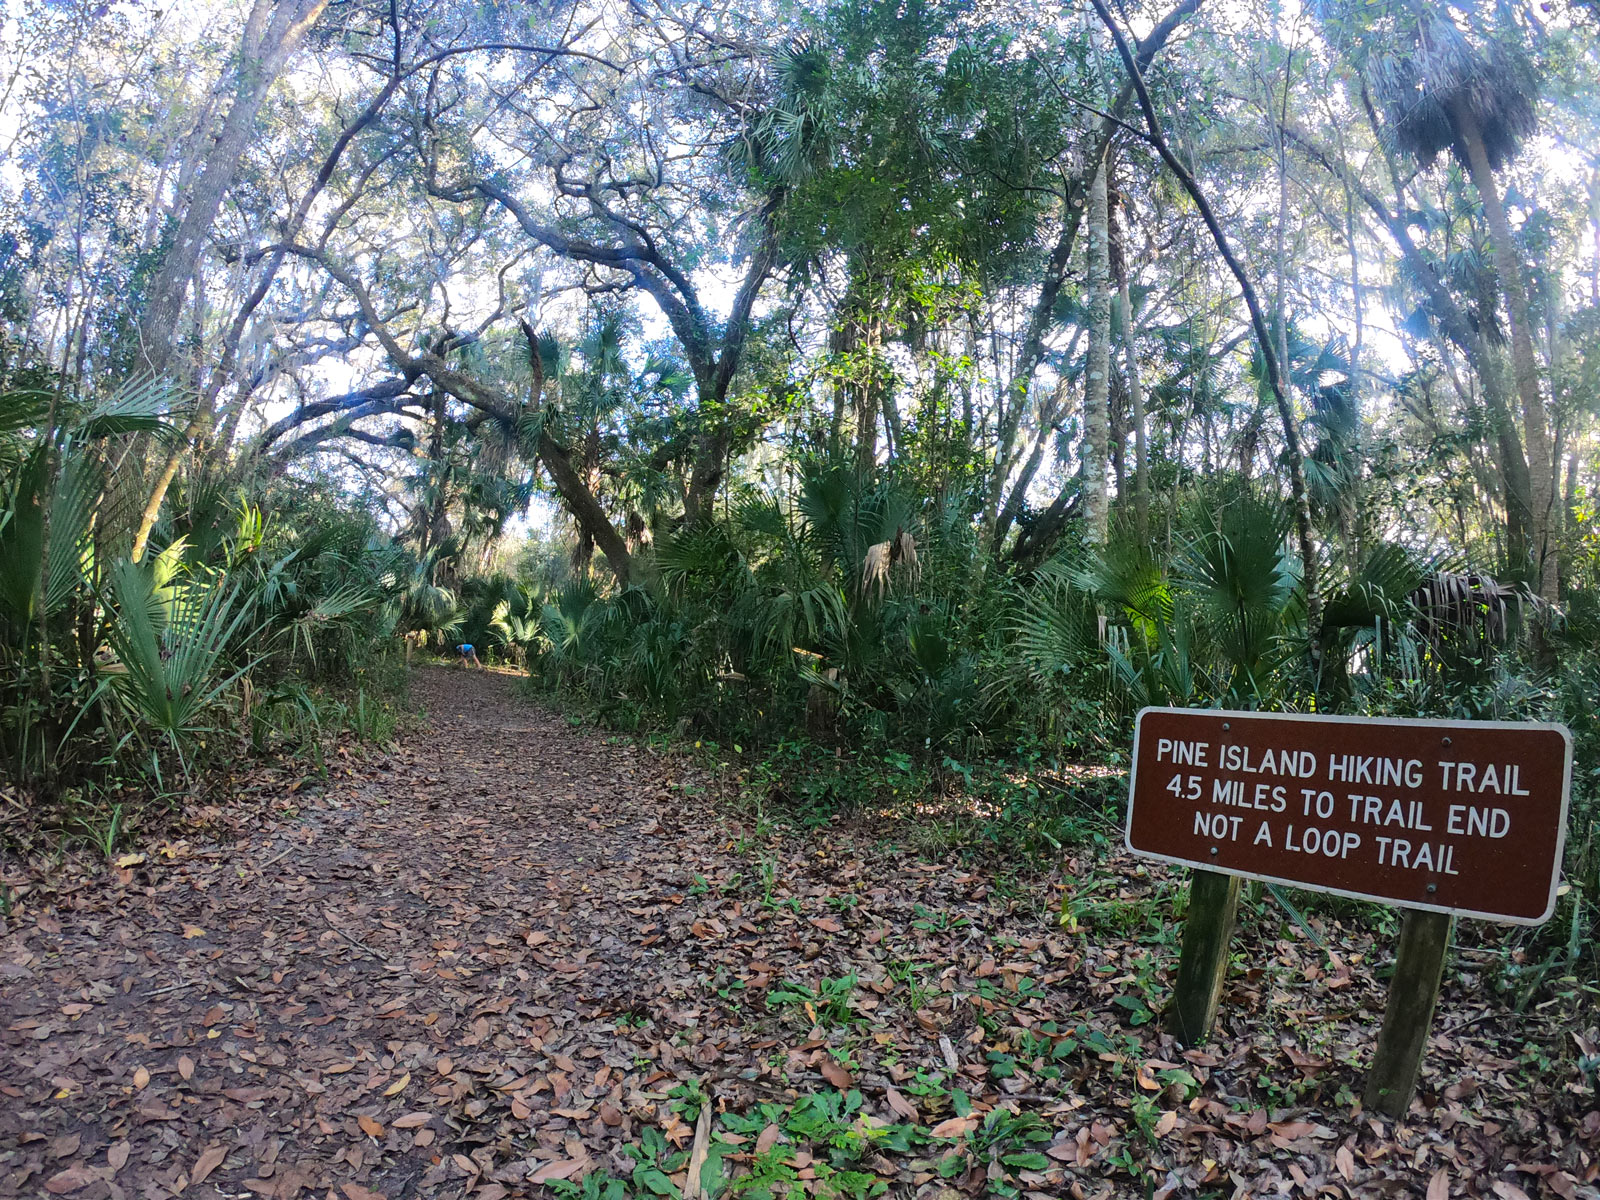 Pine Island Trail brown signage at trailhead with palm trees at Blue Spring State Park, Florida